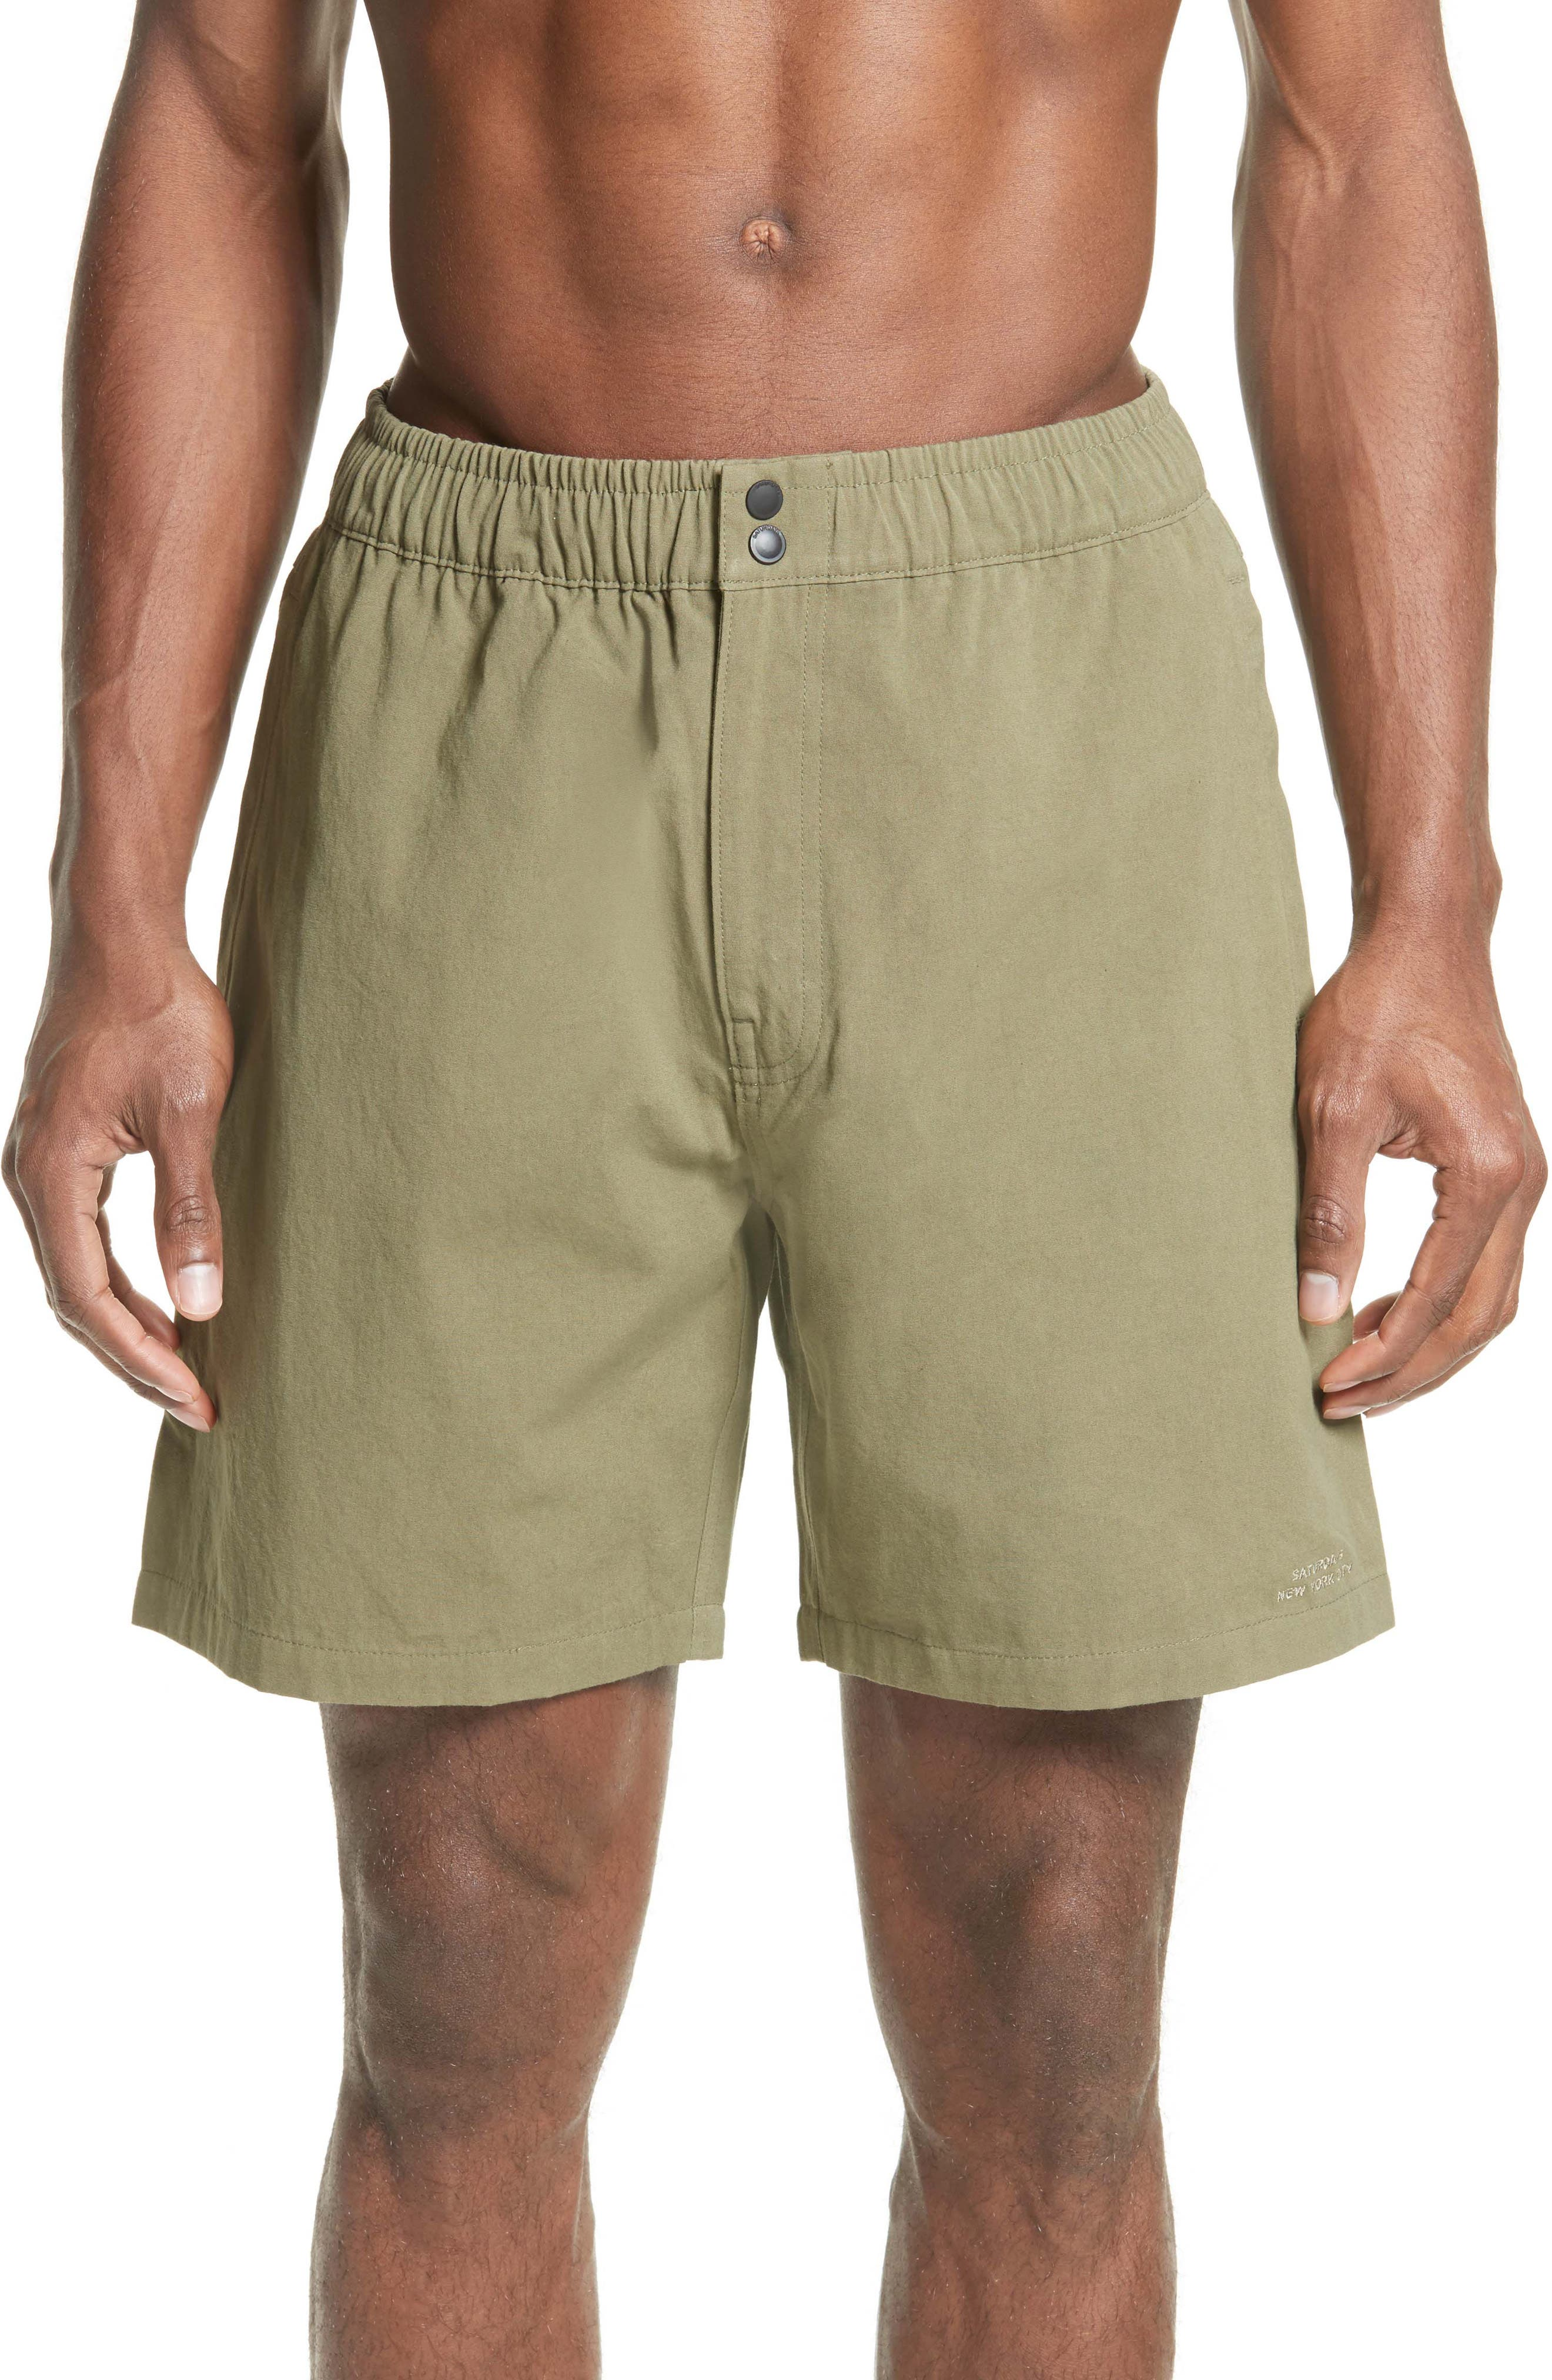 Trent Cotton Canvas Swim Trunks,                         Main,                         color, Sage